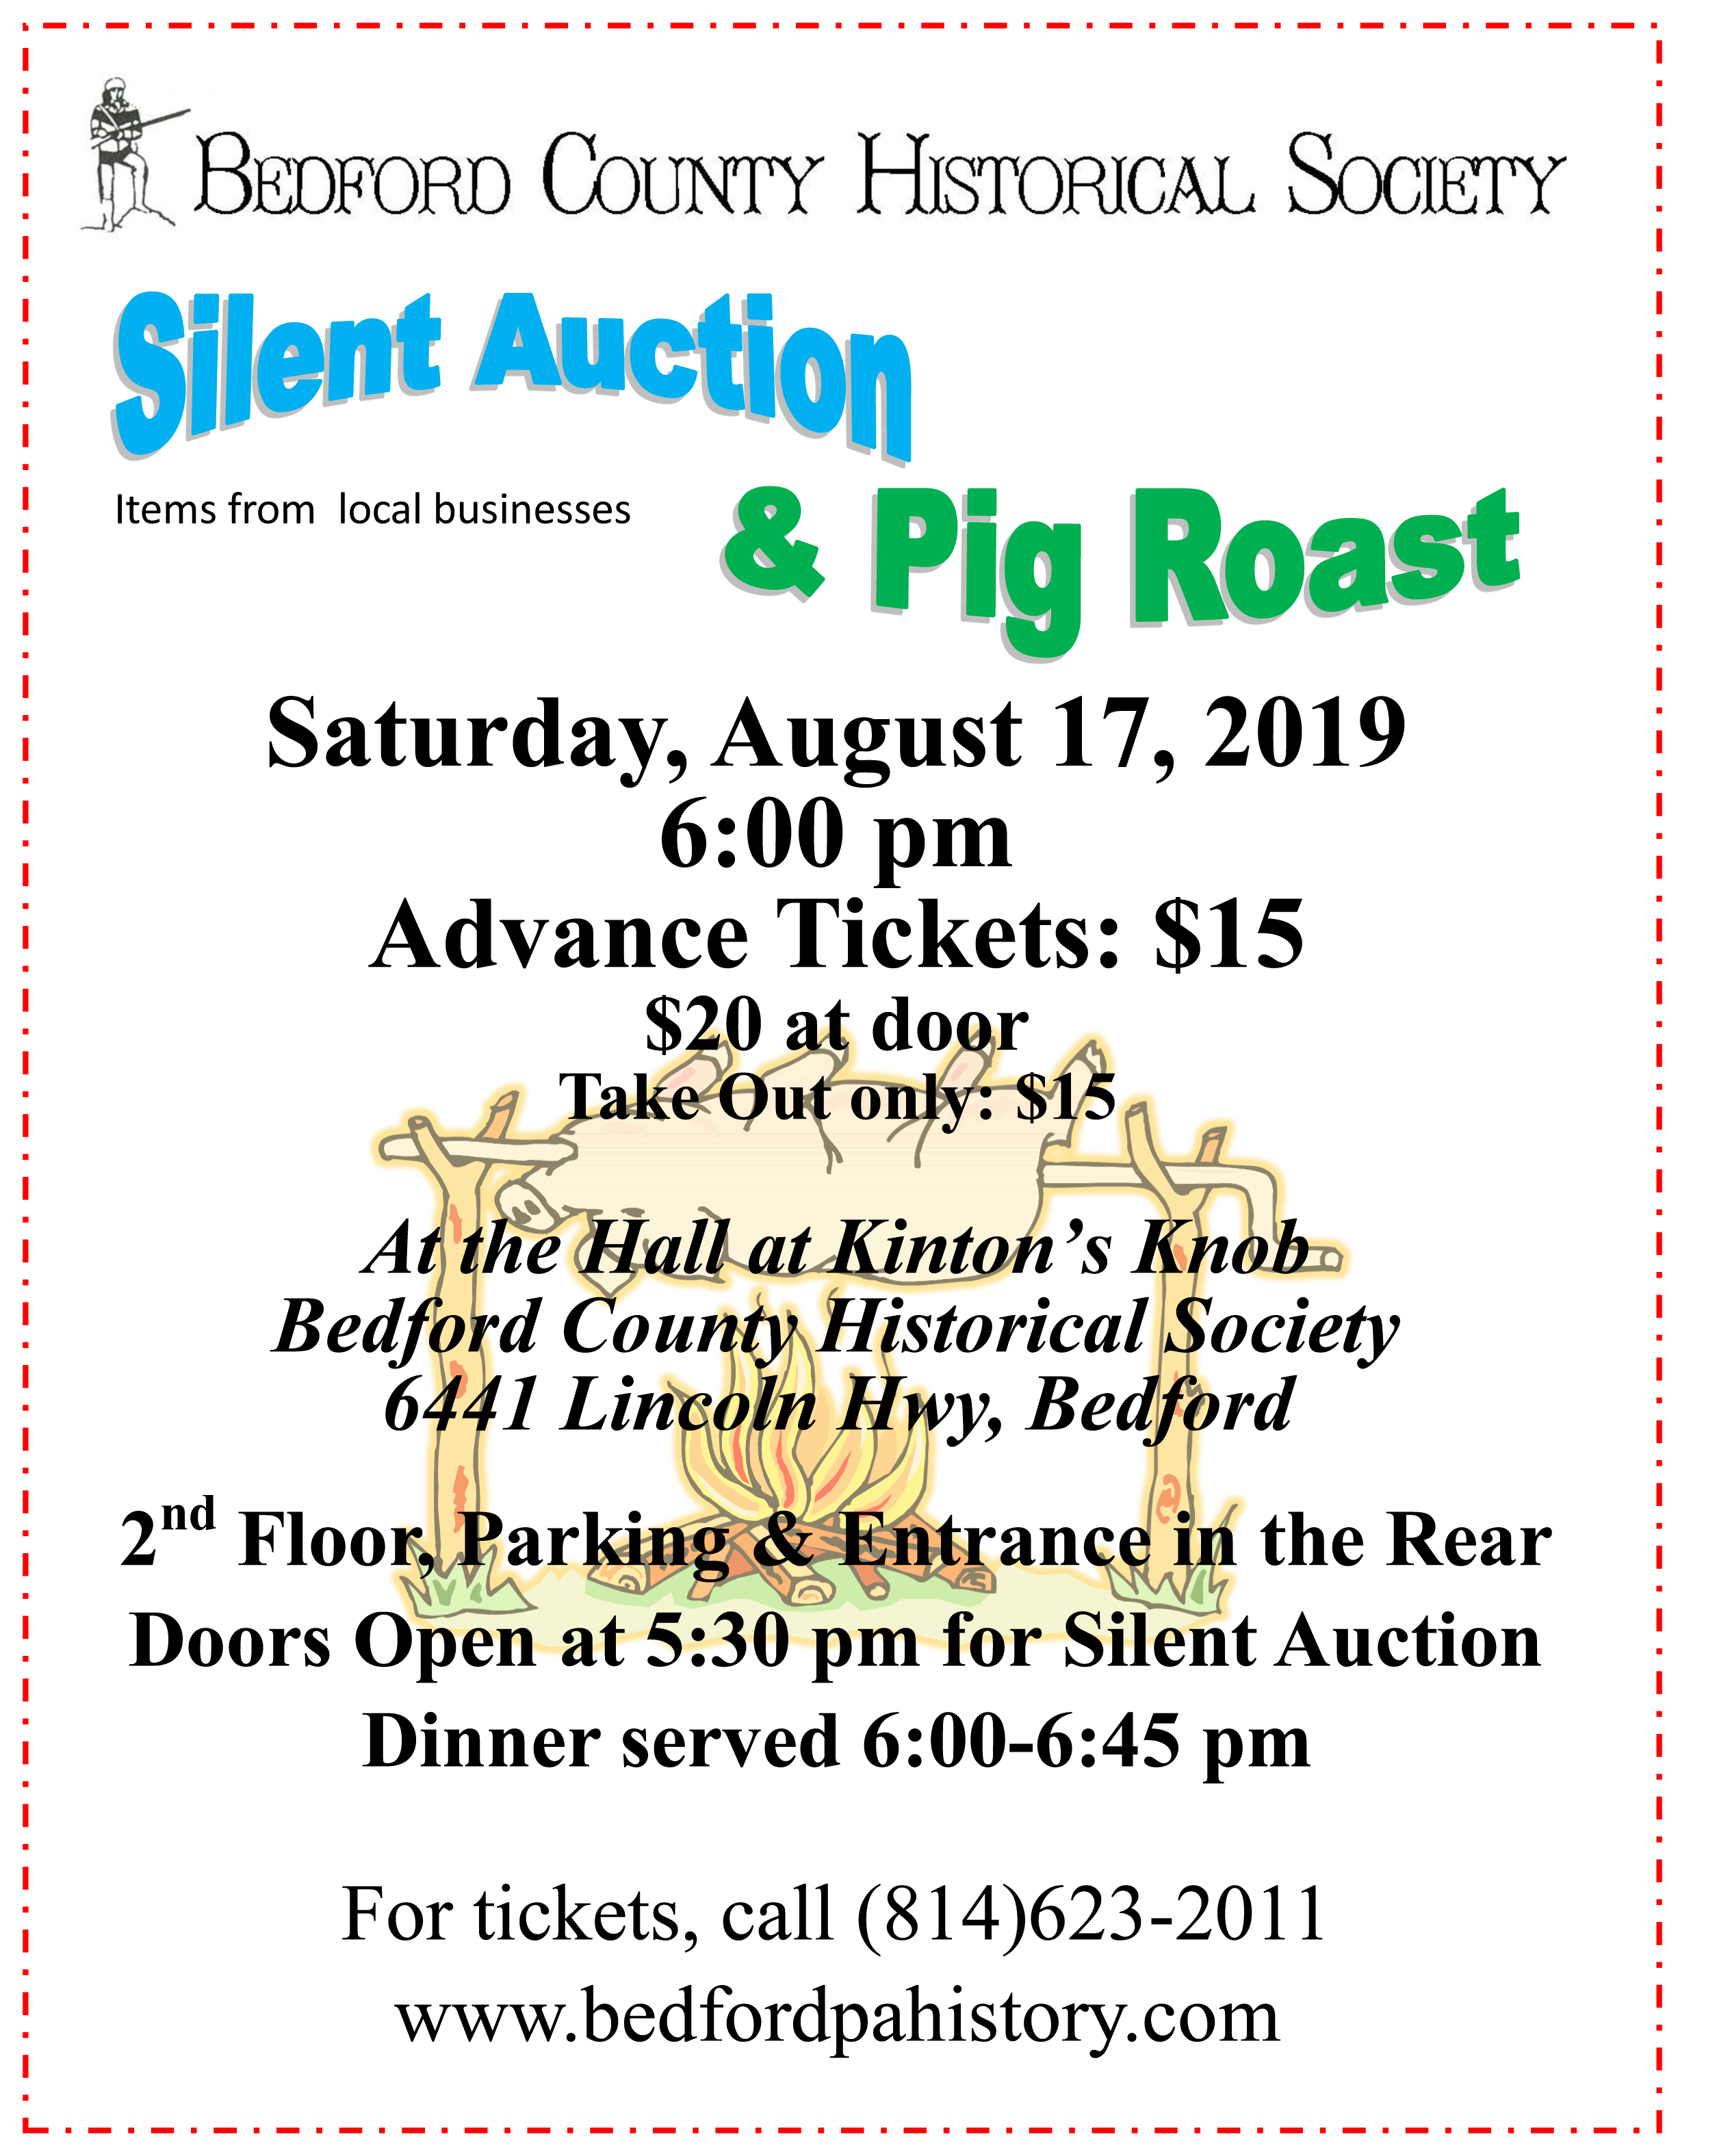 Silent Auction and Pig Roast